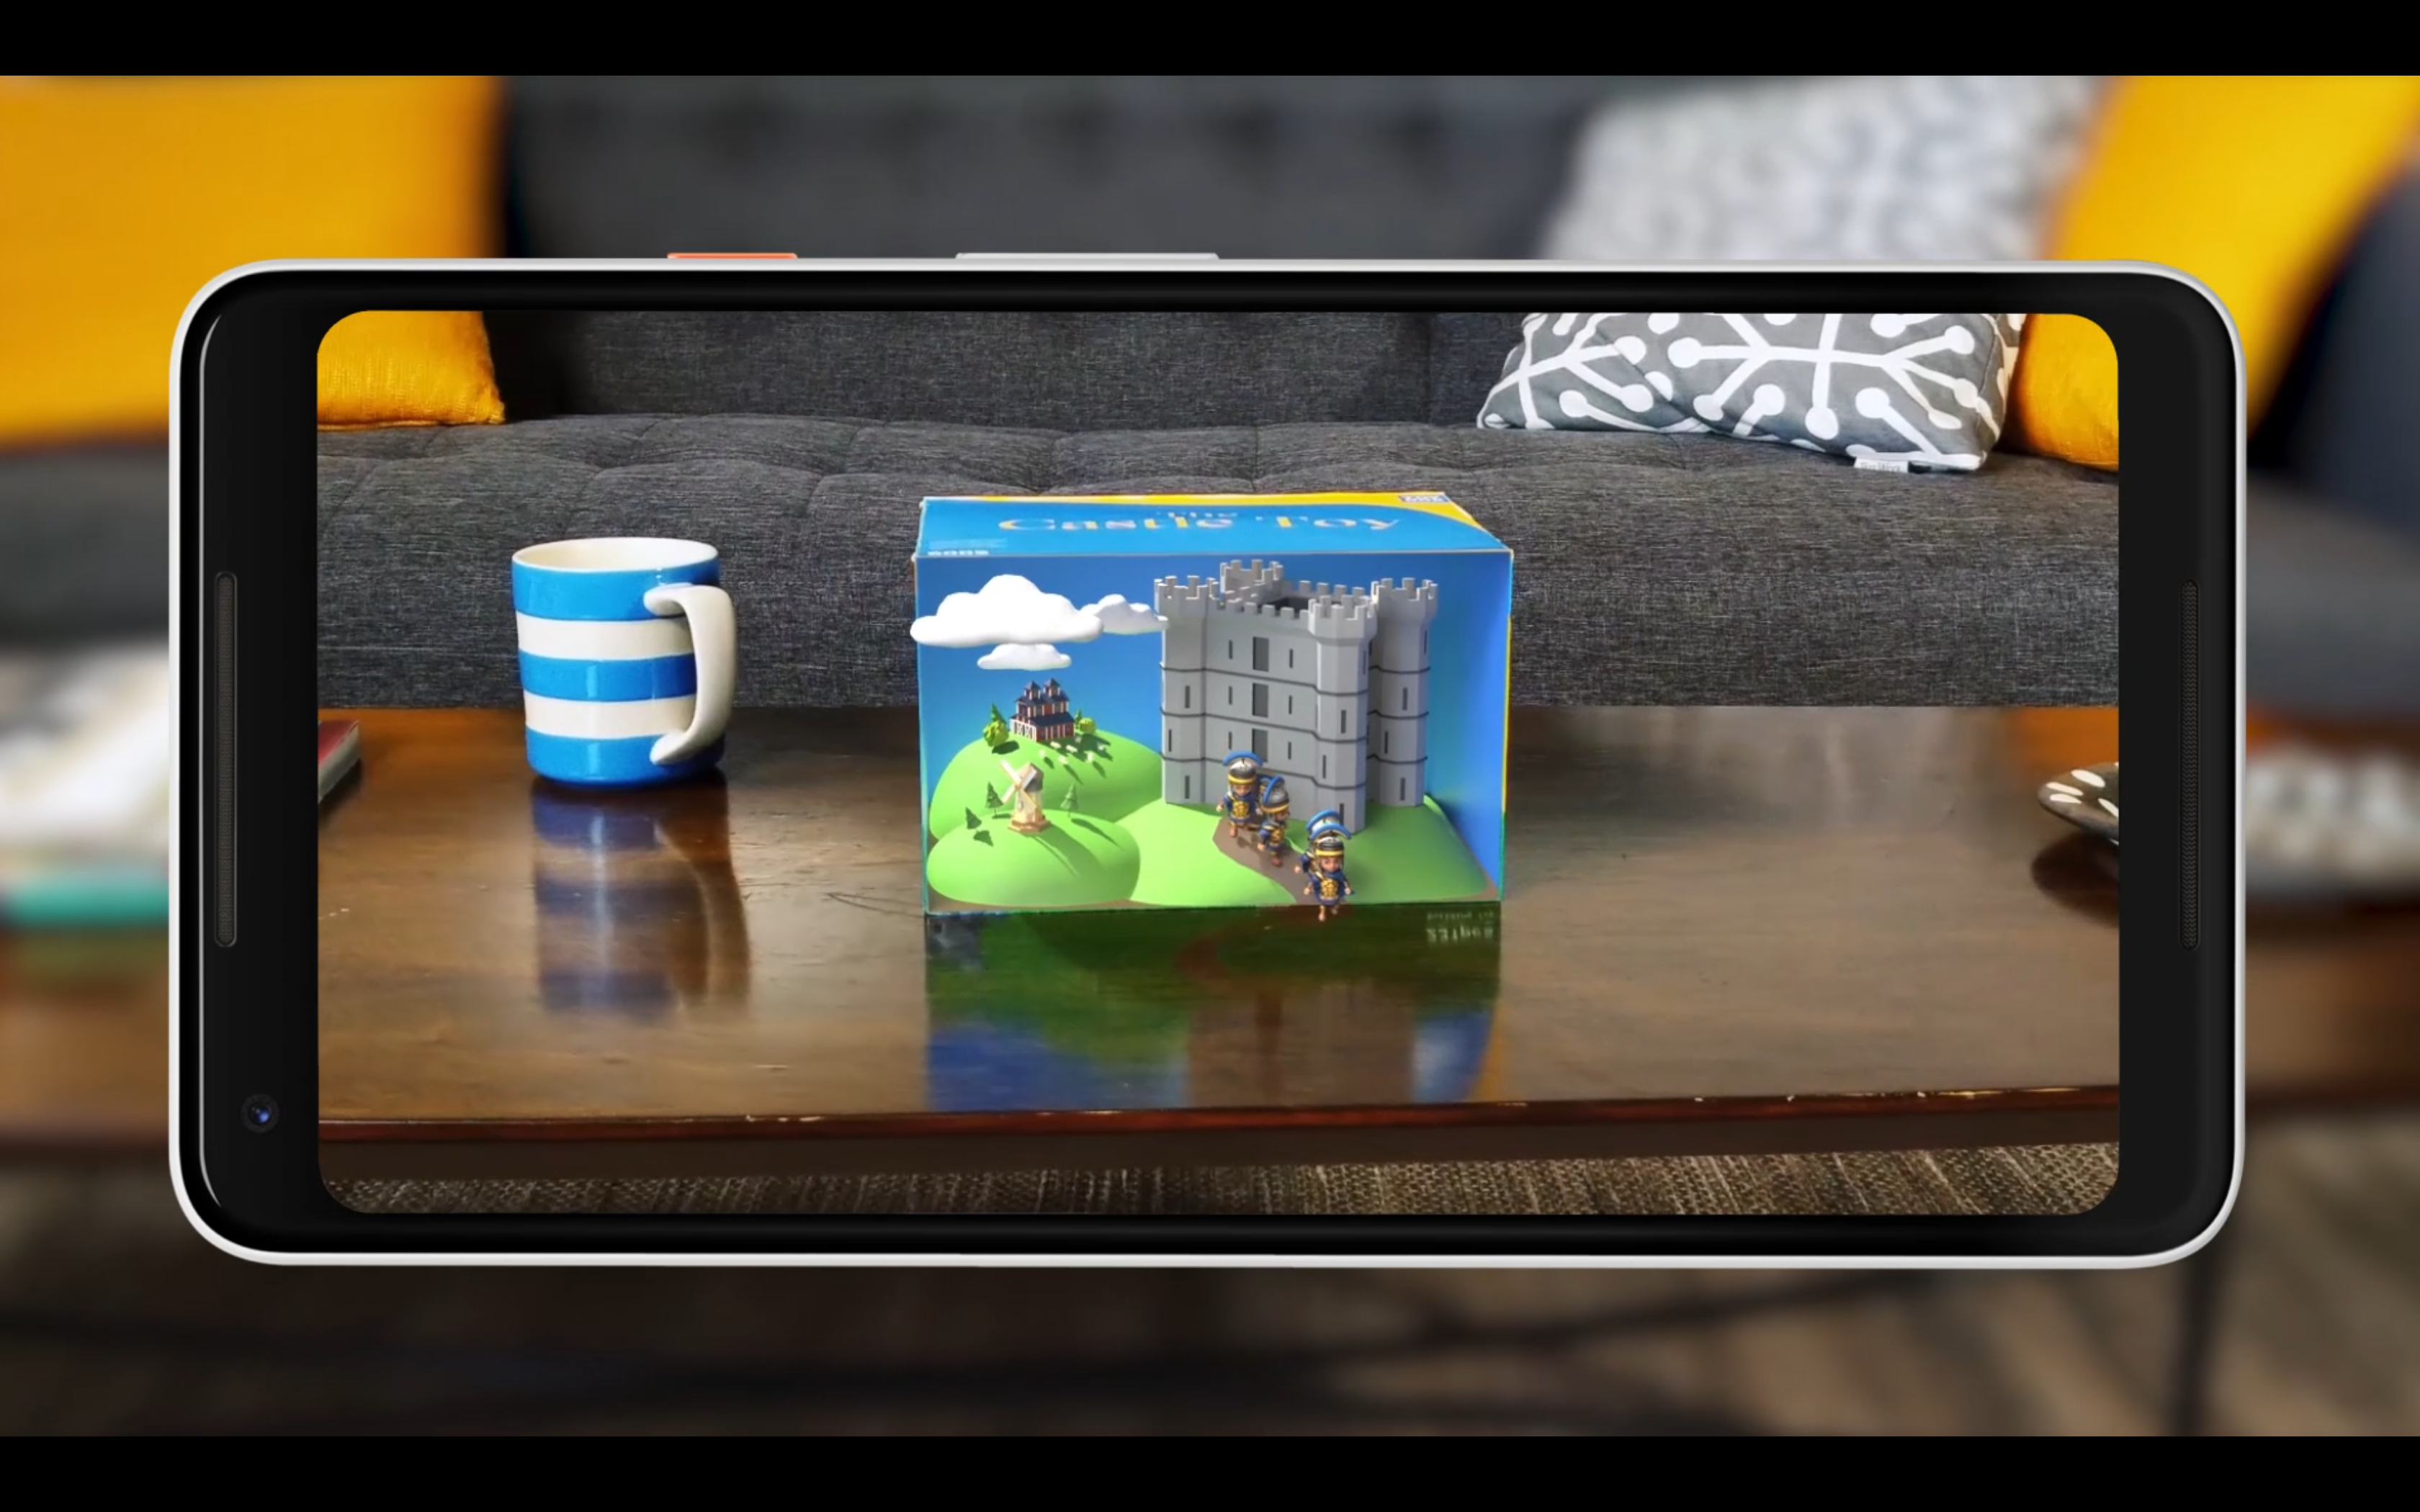 ARCore brings a toy box to life via image recognition.